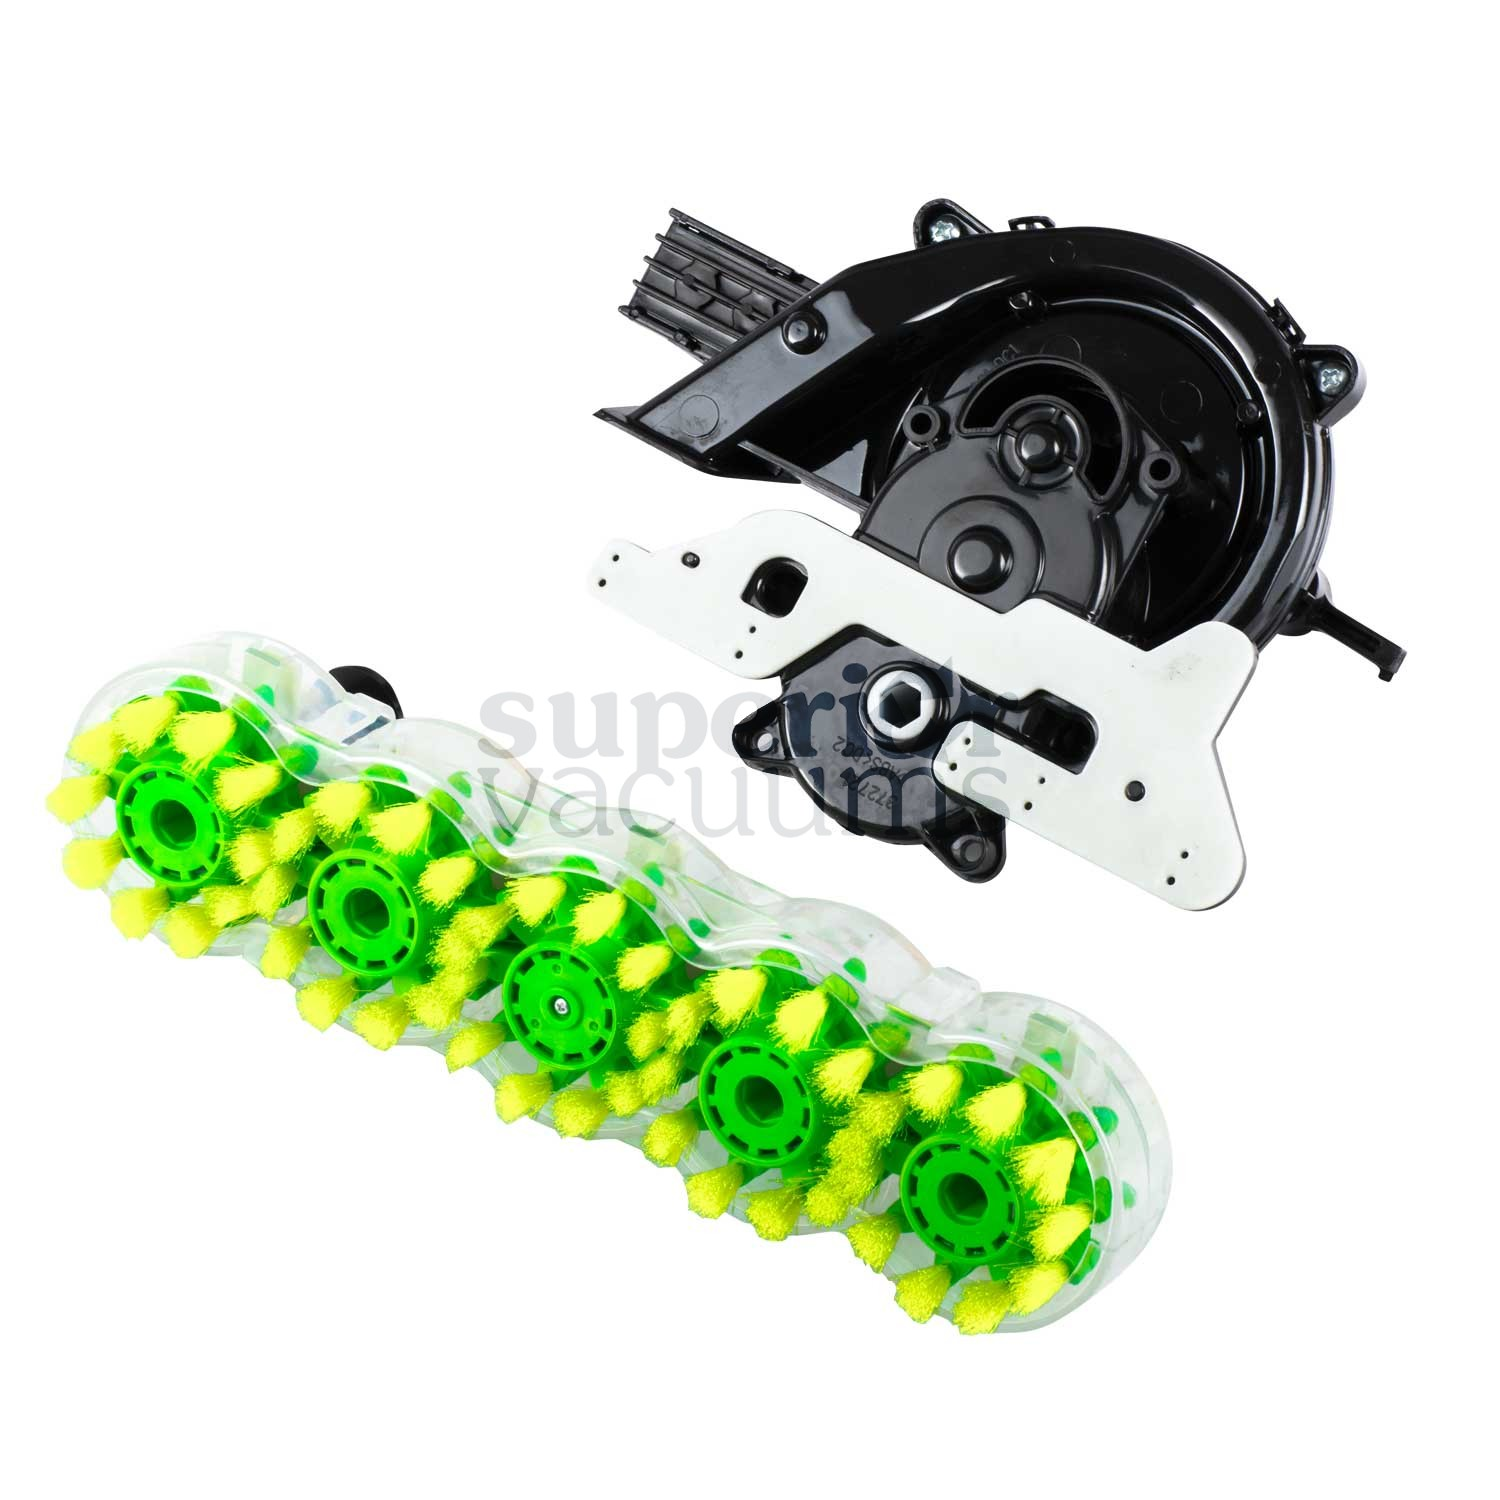 Turbine And Gear Assembly With 5 Brush Block For Steamvac F5914 F5915 F5917 F5918 Fh50045 Fh50046 2 Ports F5912